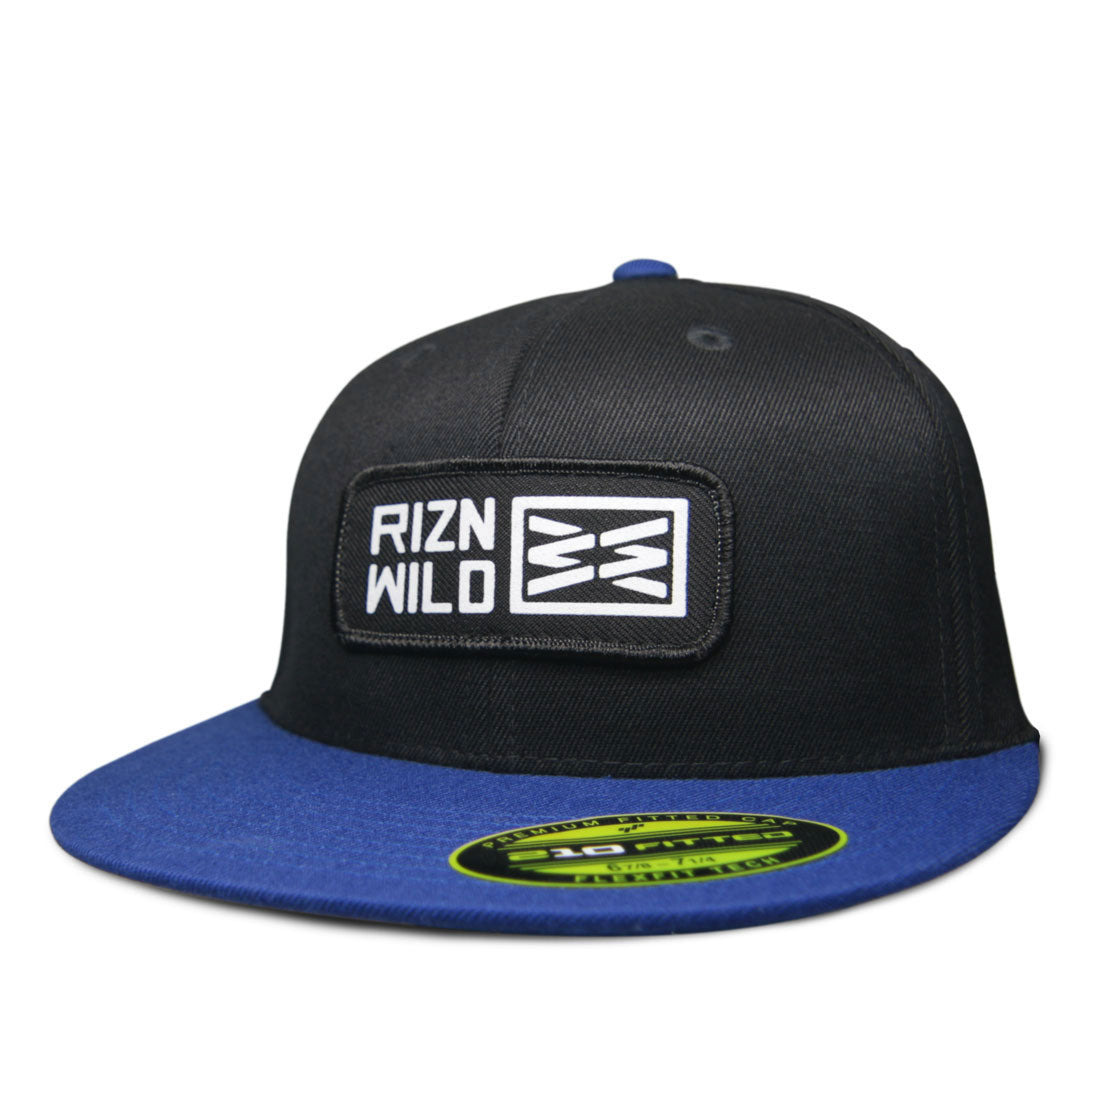 RIZNWILD | 210 flex-fit fitted hat front view patch